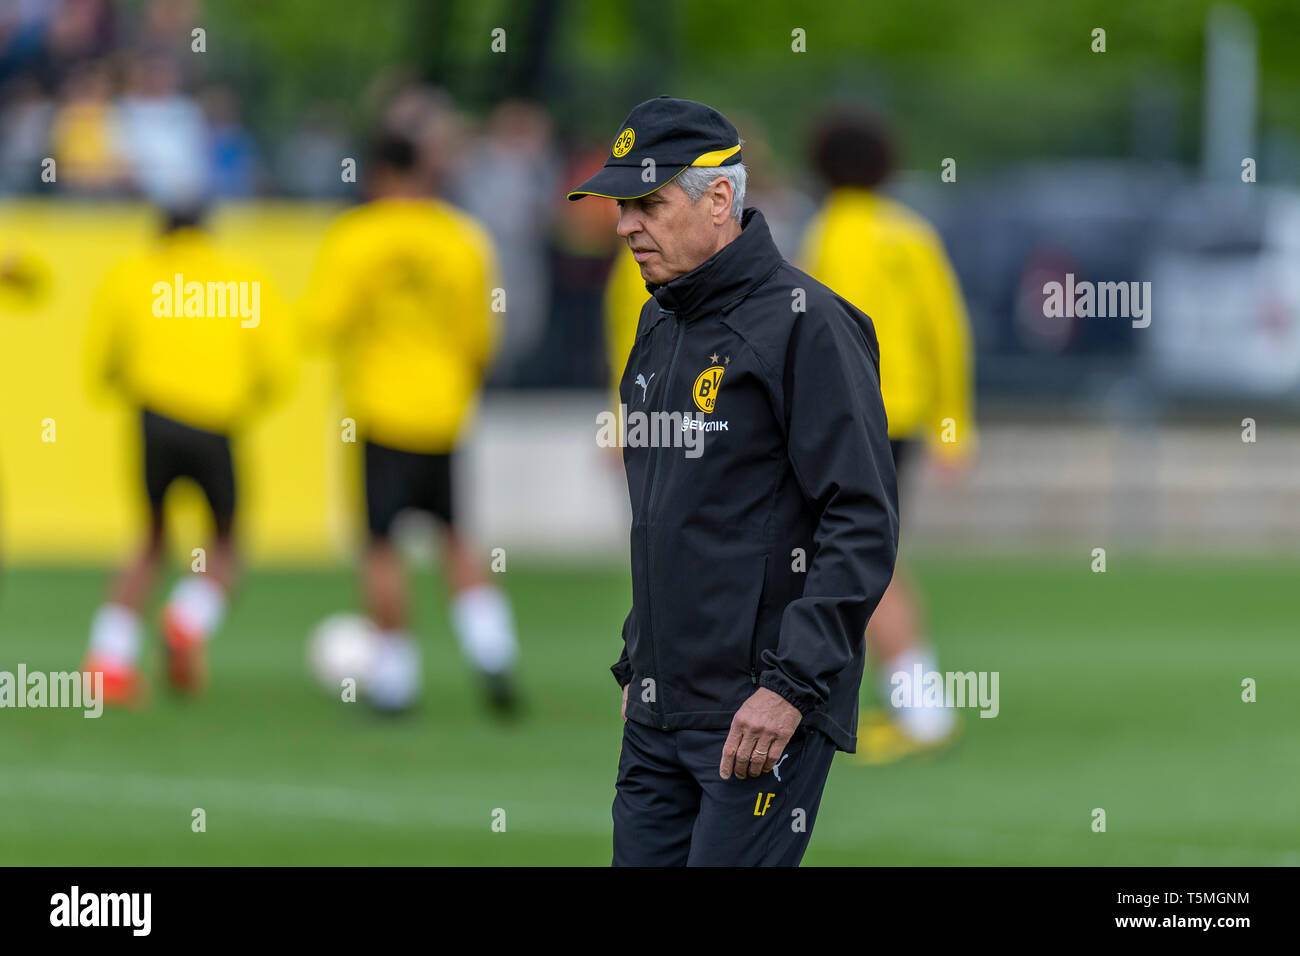 Fußball: 1. Bundesliga, Saison 2018/2019, Training von Borussia Dortmund am 25.04.2019 in Dortmund.  Dortmunds Trainer Lucien Favre Stock Photo